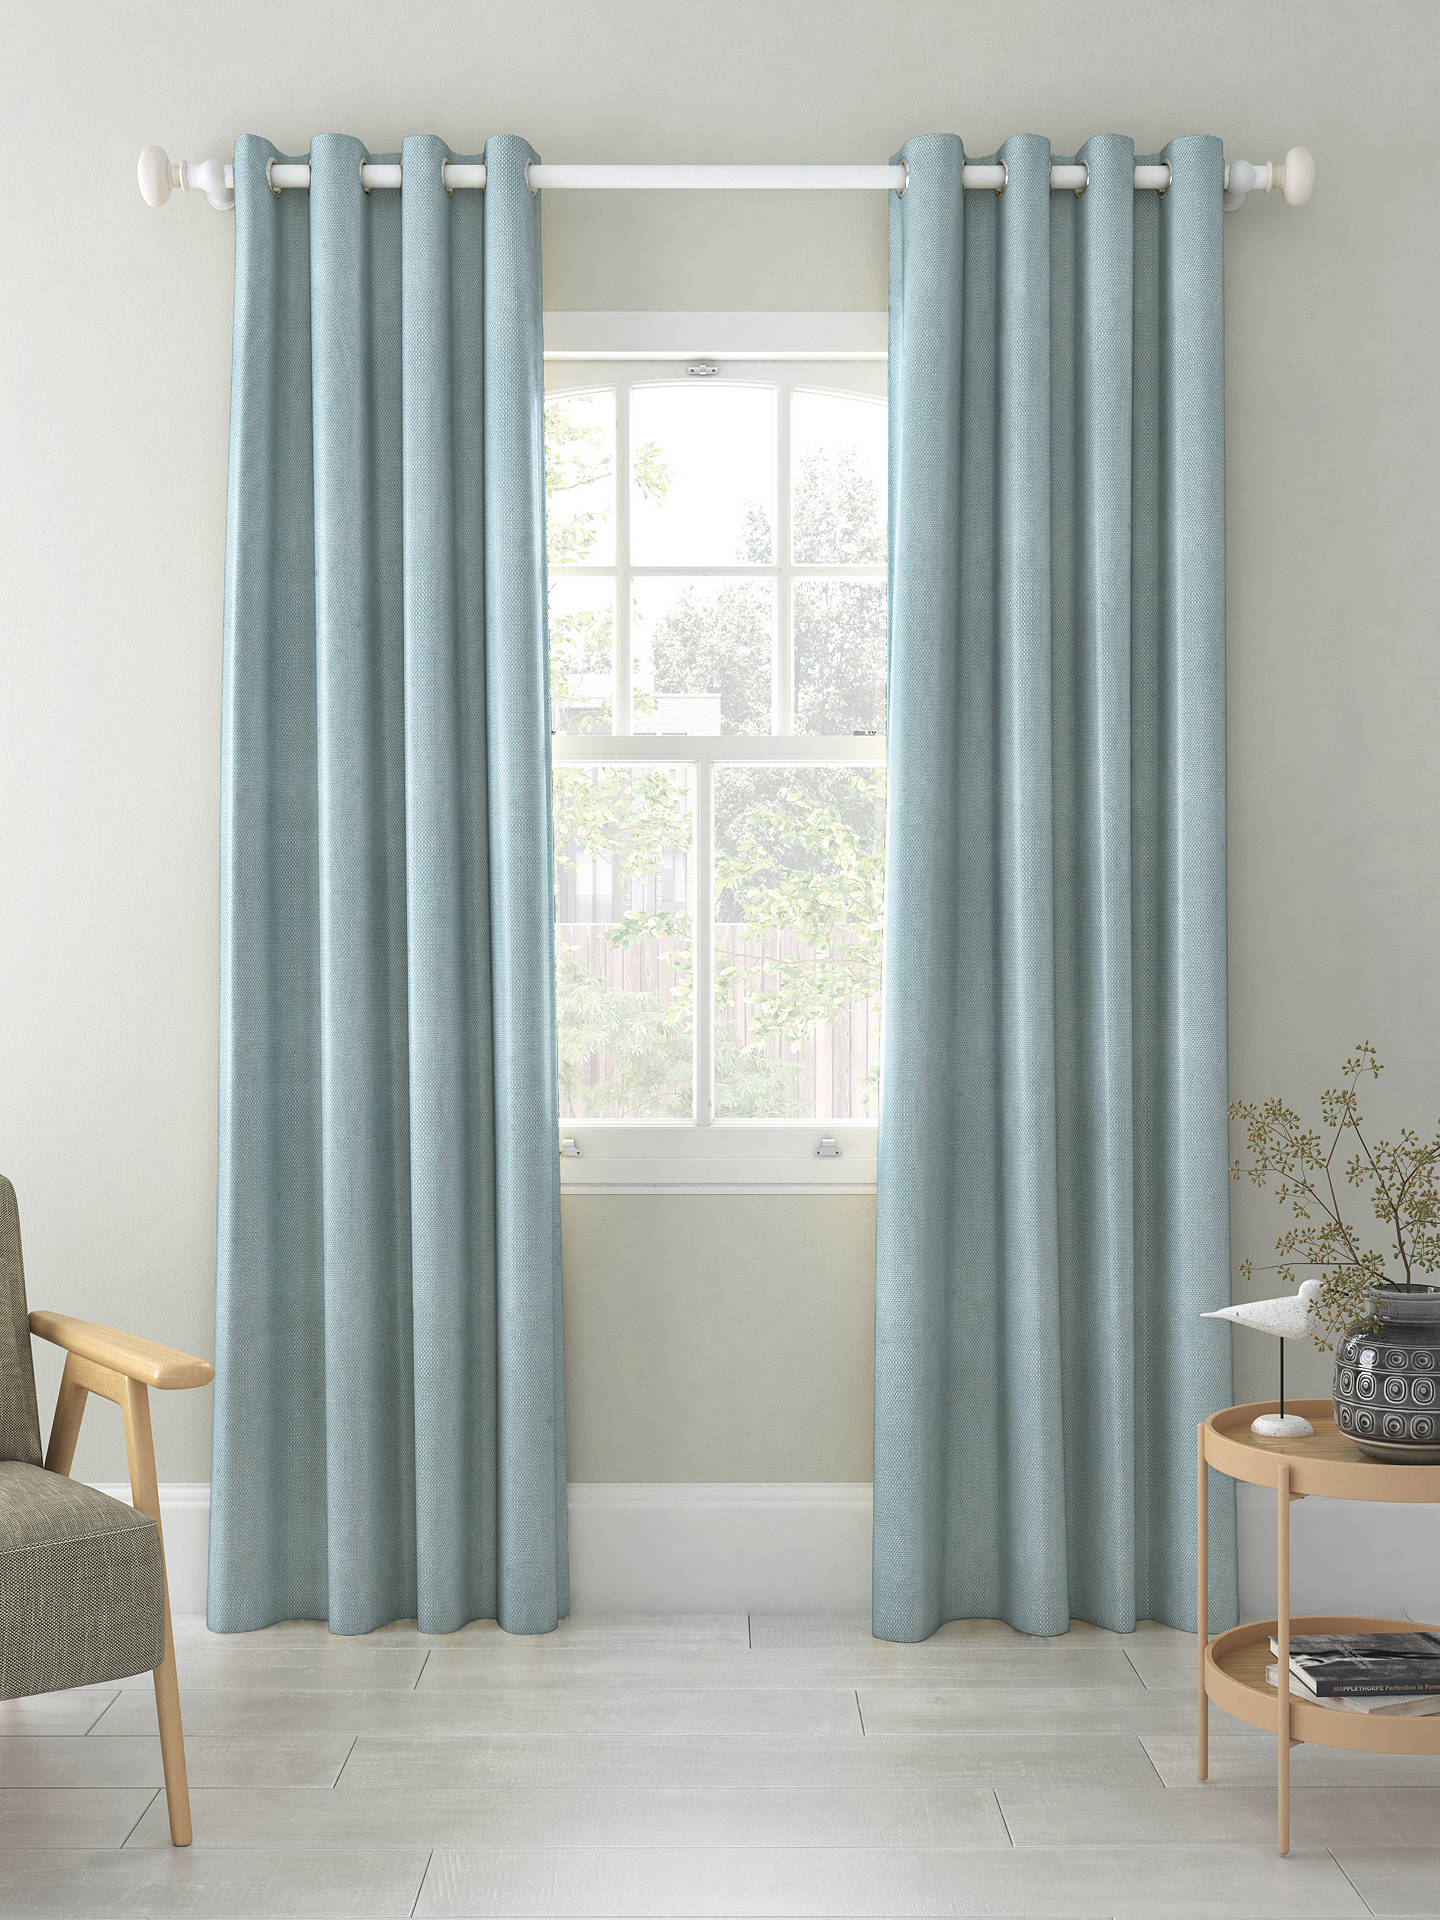 Buy John Lewis & Partners Basket Weave Pair Blackout Lined Eyelet Curtains, Mineral Blue, W167 x Drop 137cm Online at johnlewis.com